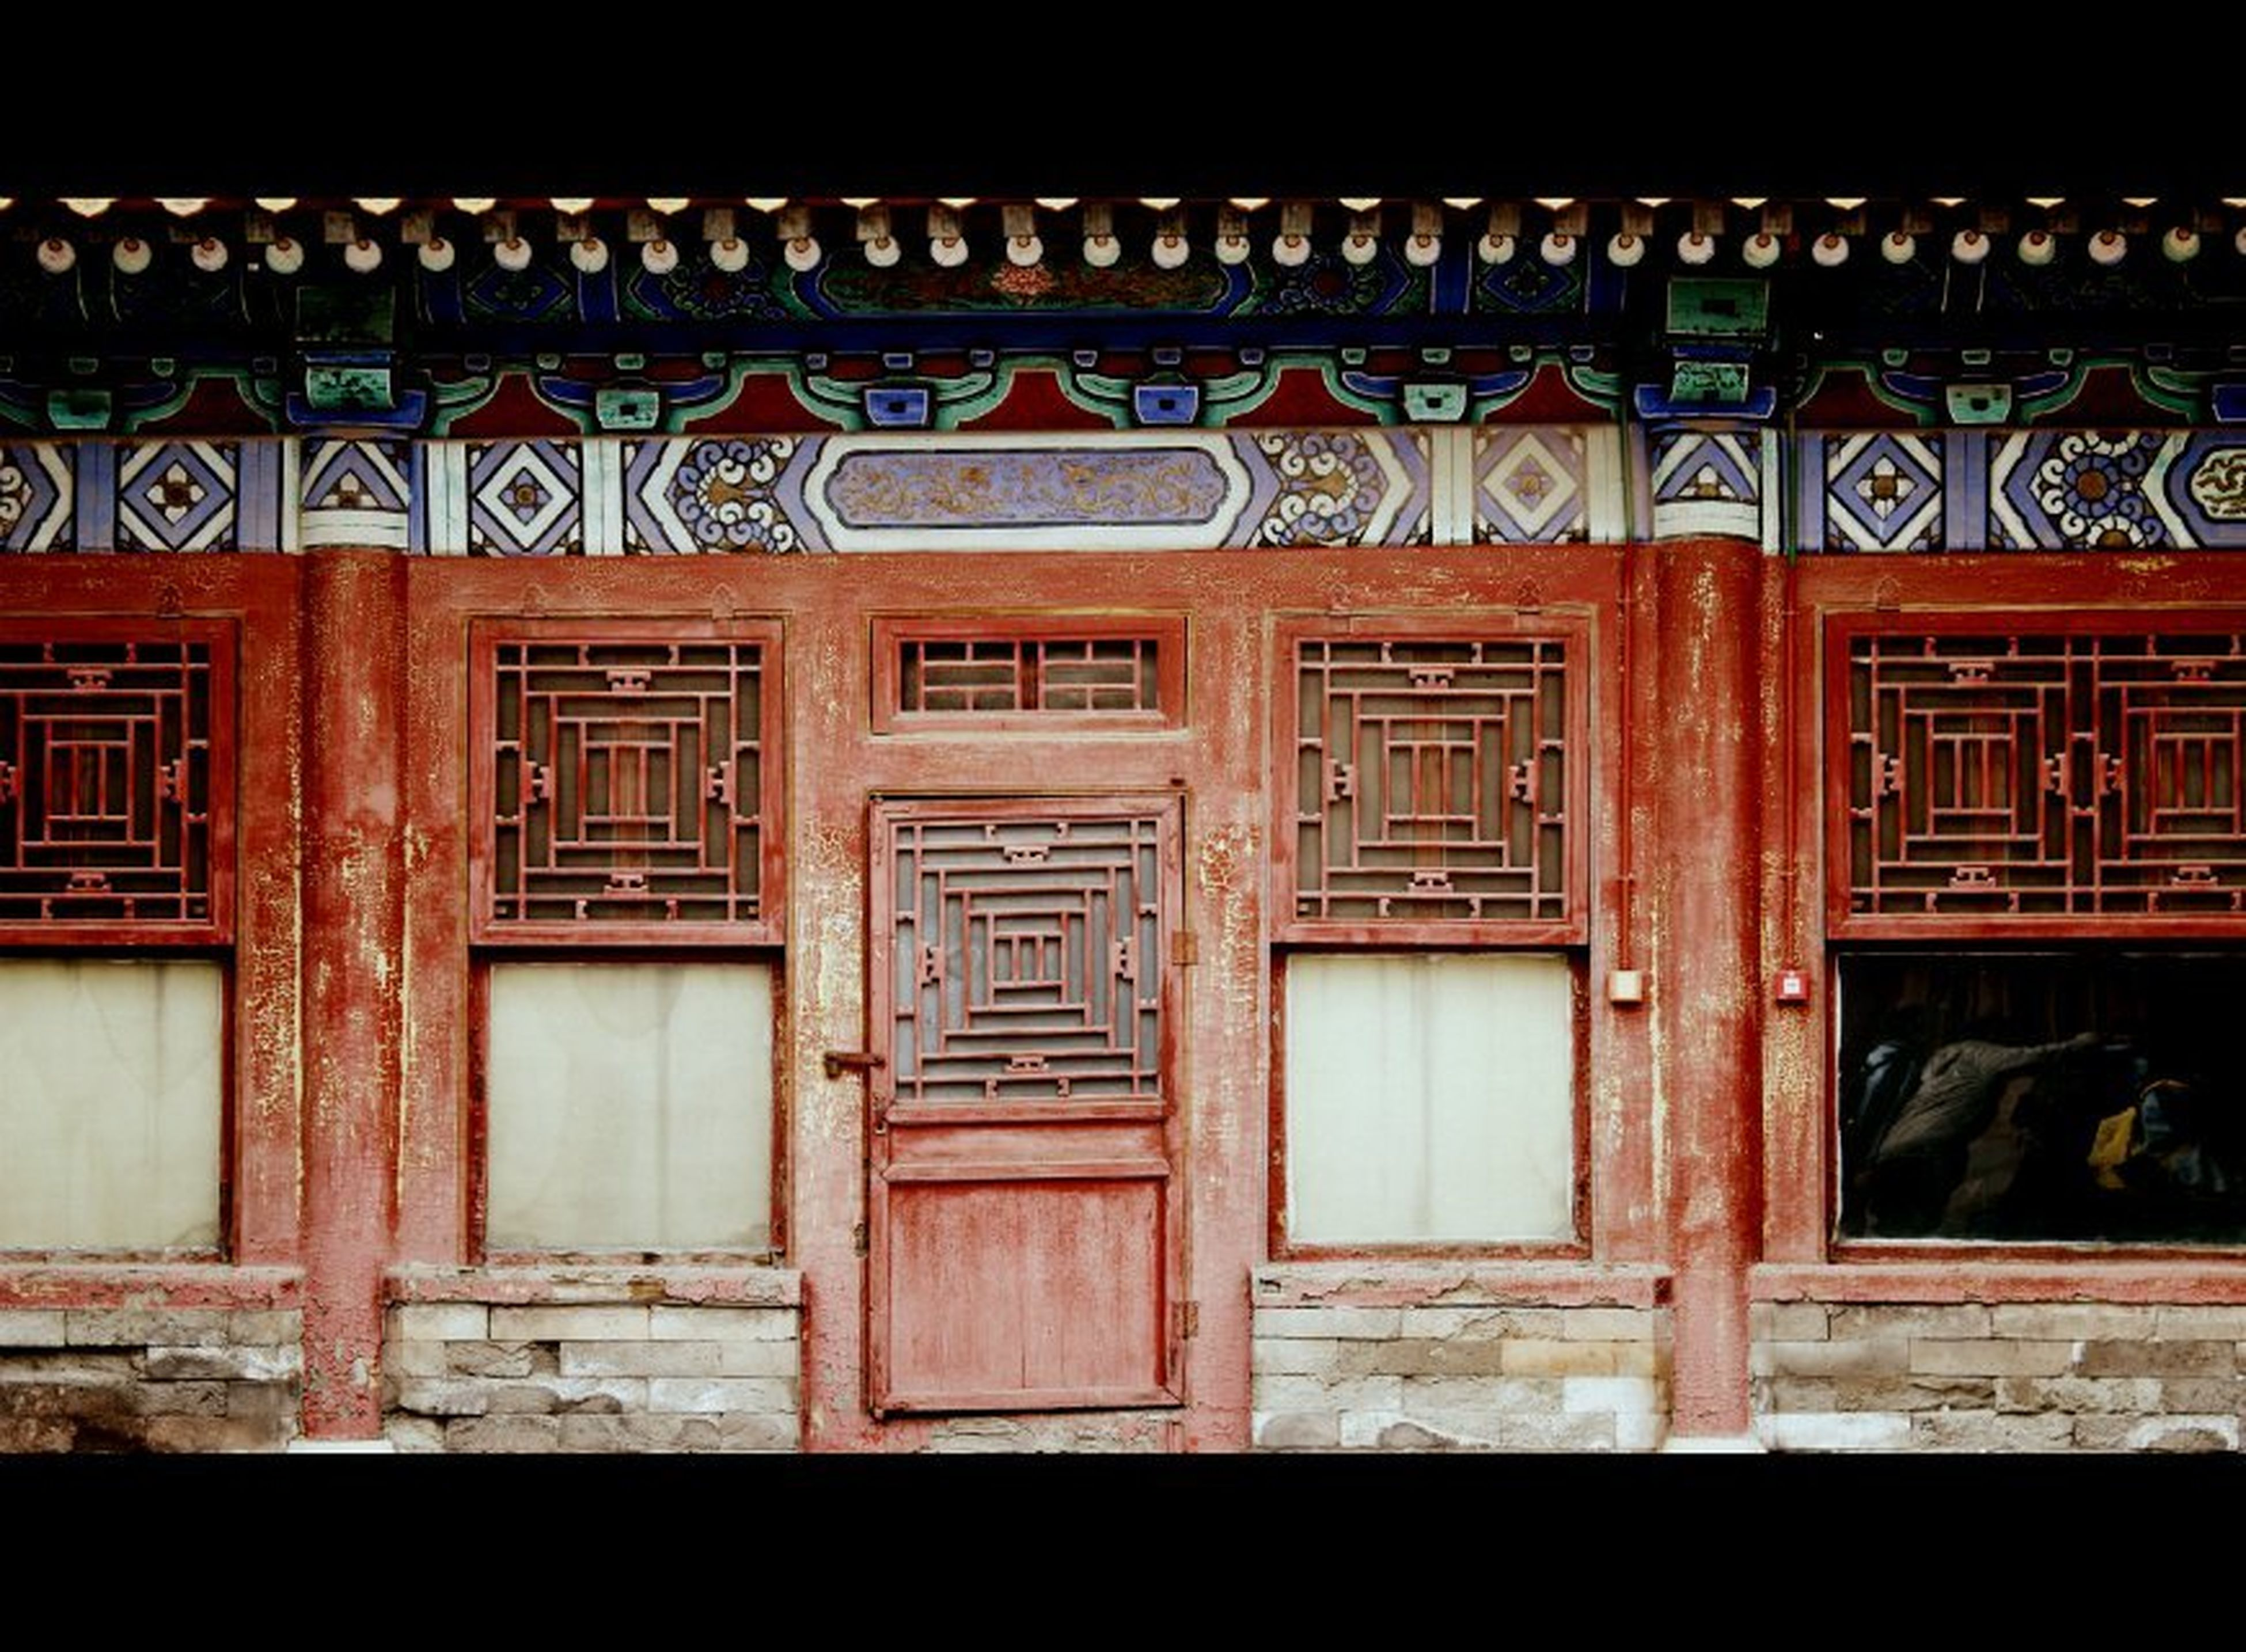 architecture, built structure, building exterior, text, western script, door, window, communication, closed, red, non-western script, night, graffiti, entrance, house, wood - material, no people, outdoors, facade, building